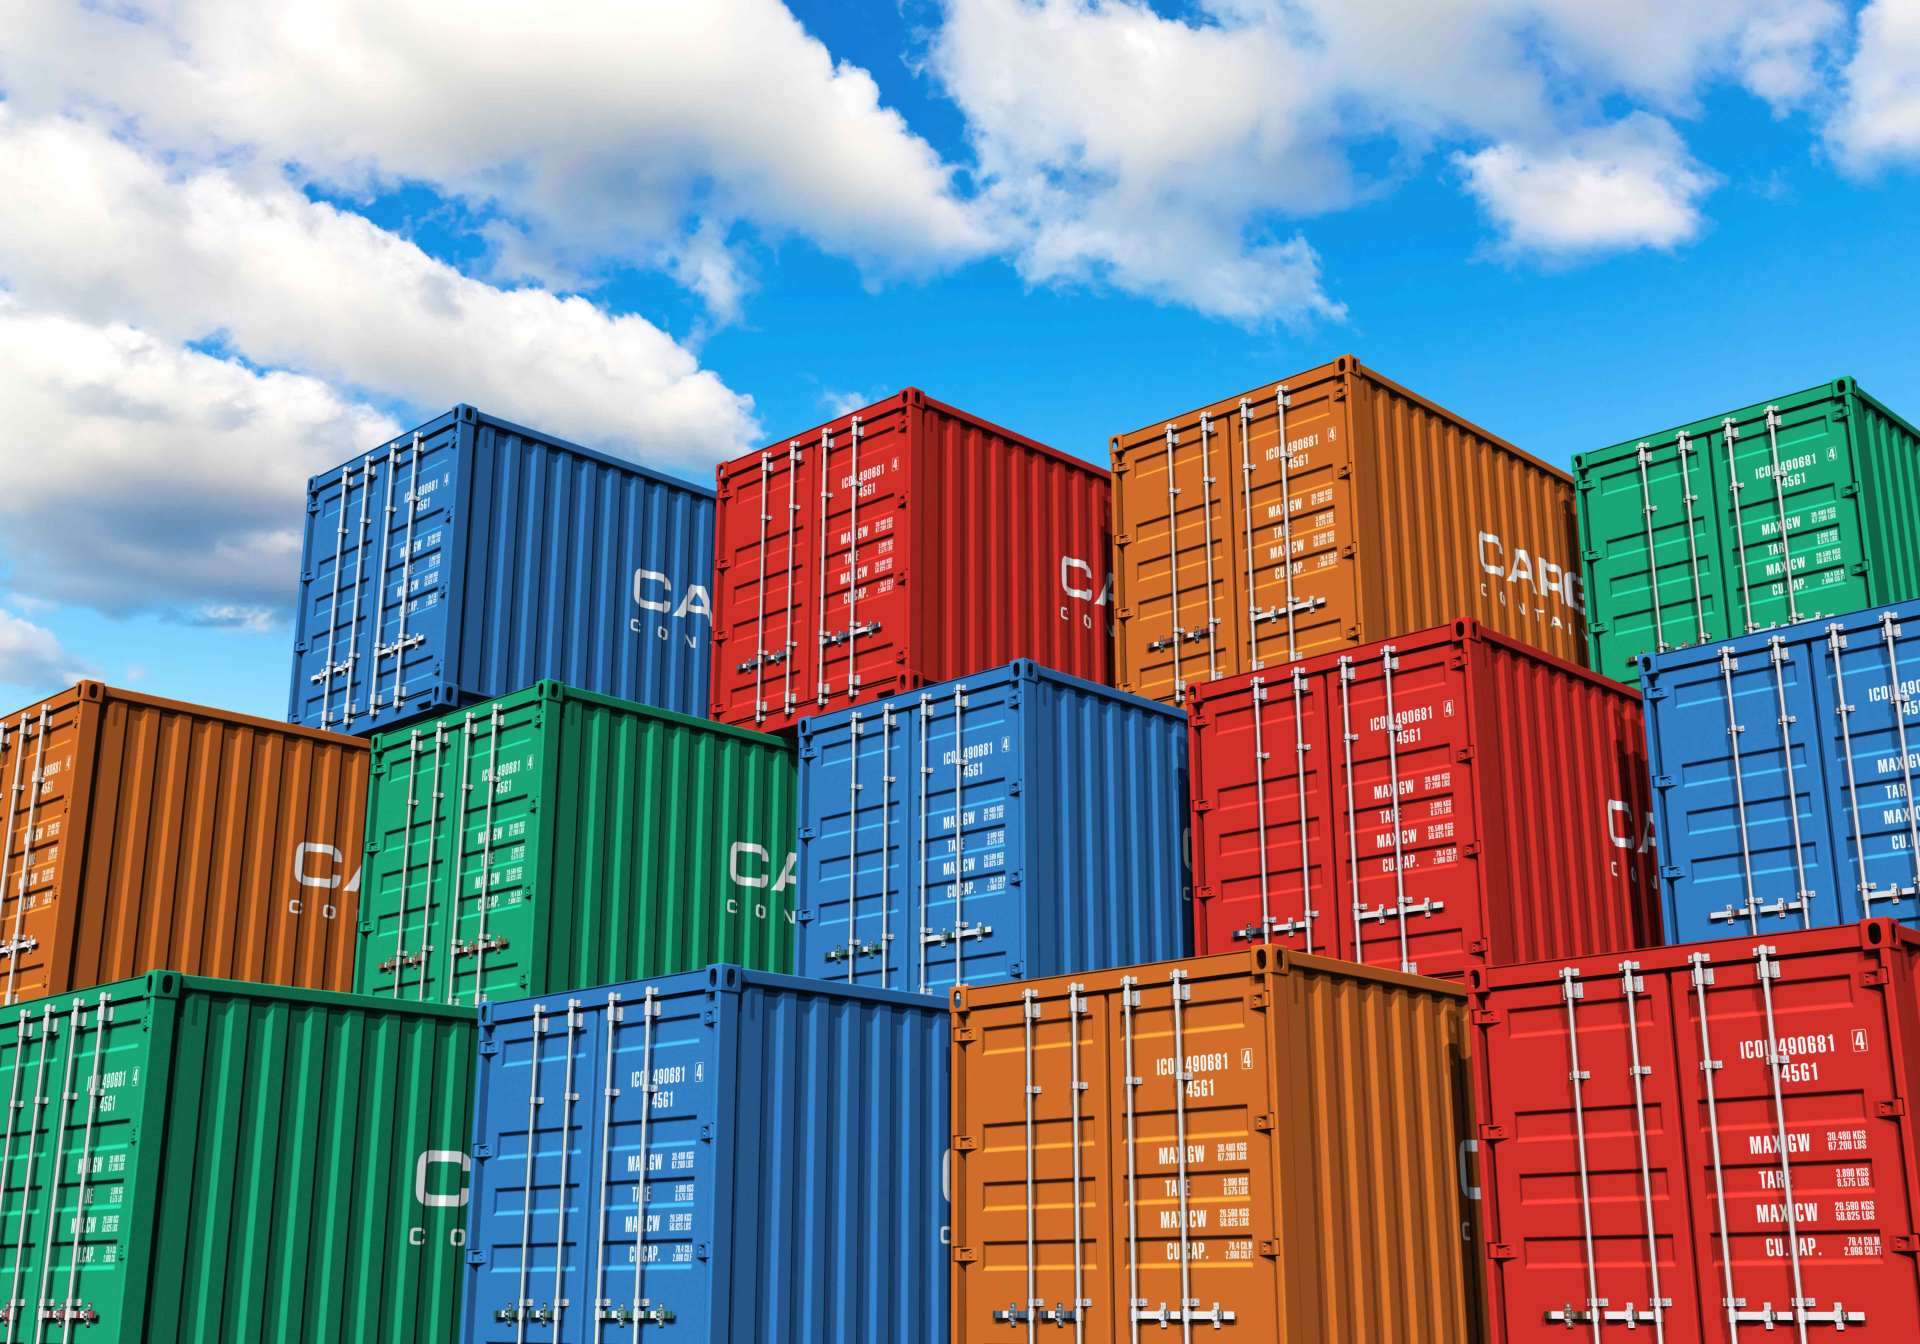 Import — Pile of Containers in W. Palm Beach, FL